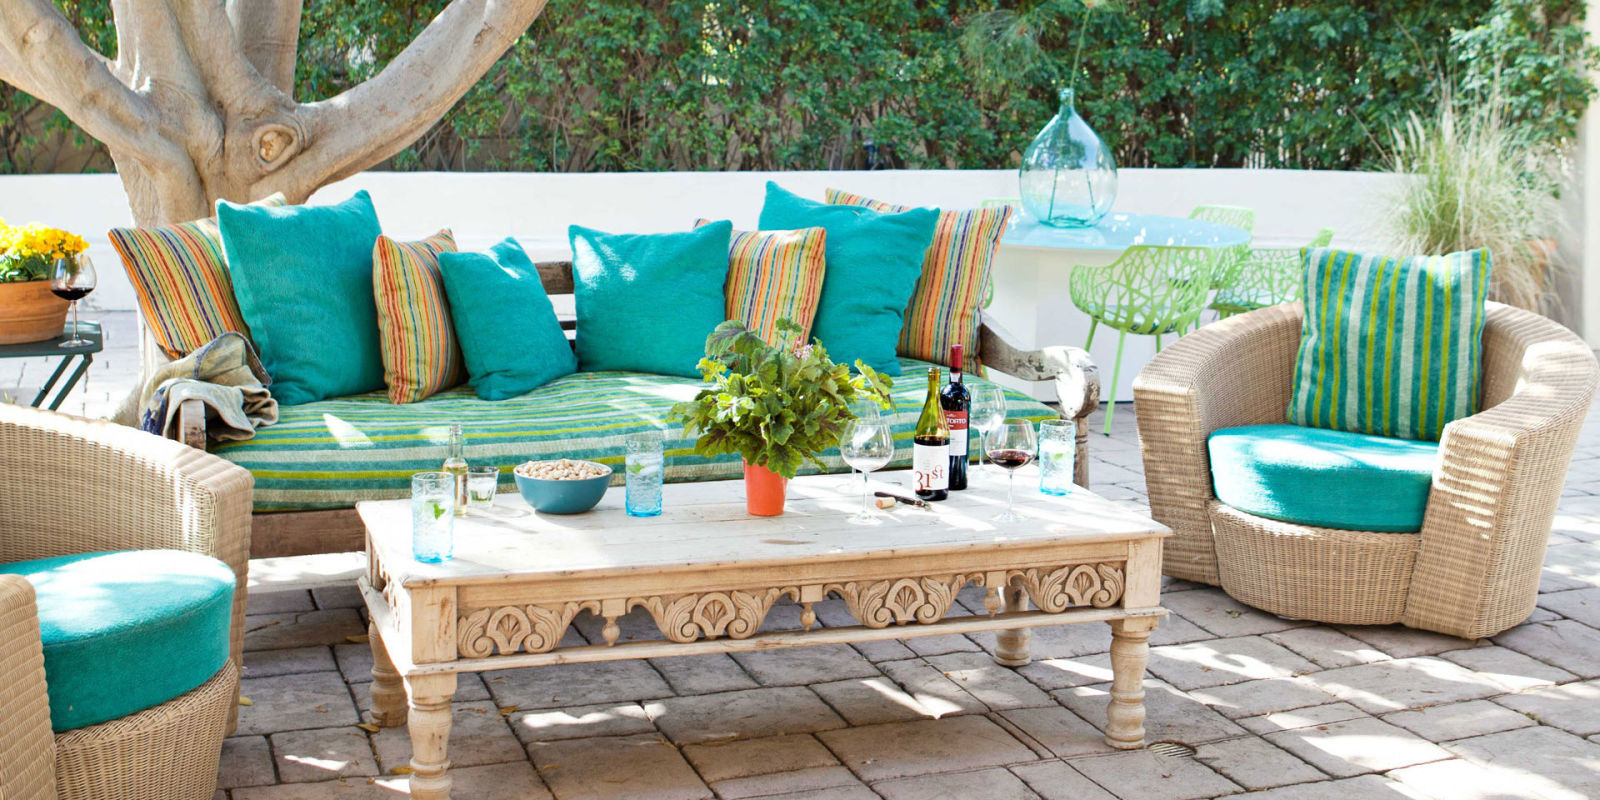 50 patio and outdoor room design ideas and photos for Patio table centerpiece ideas